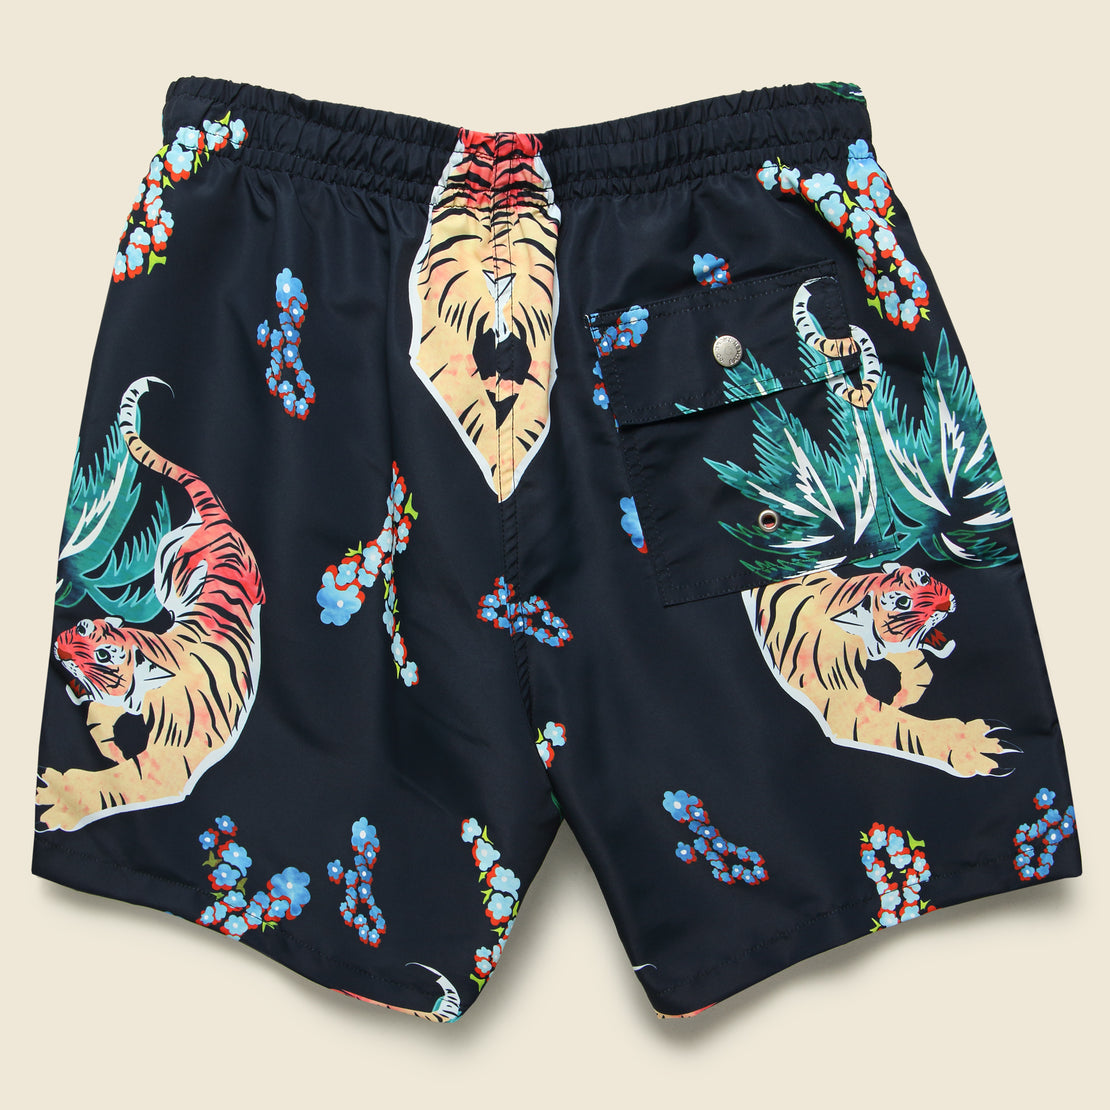 Hawaiian Tiger Swim Trunk - Black